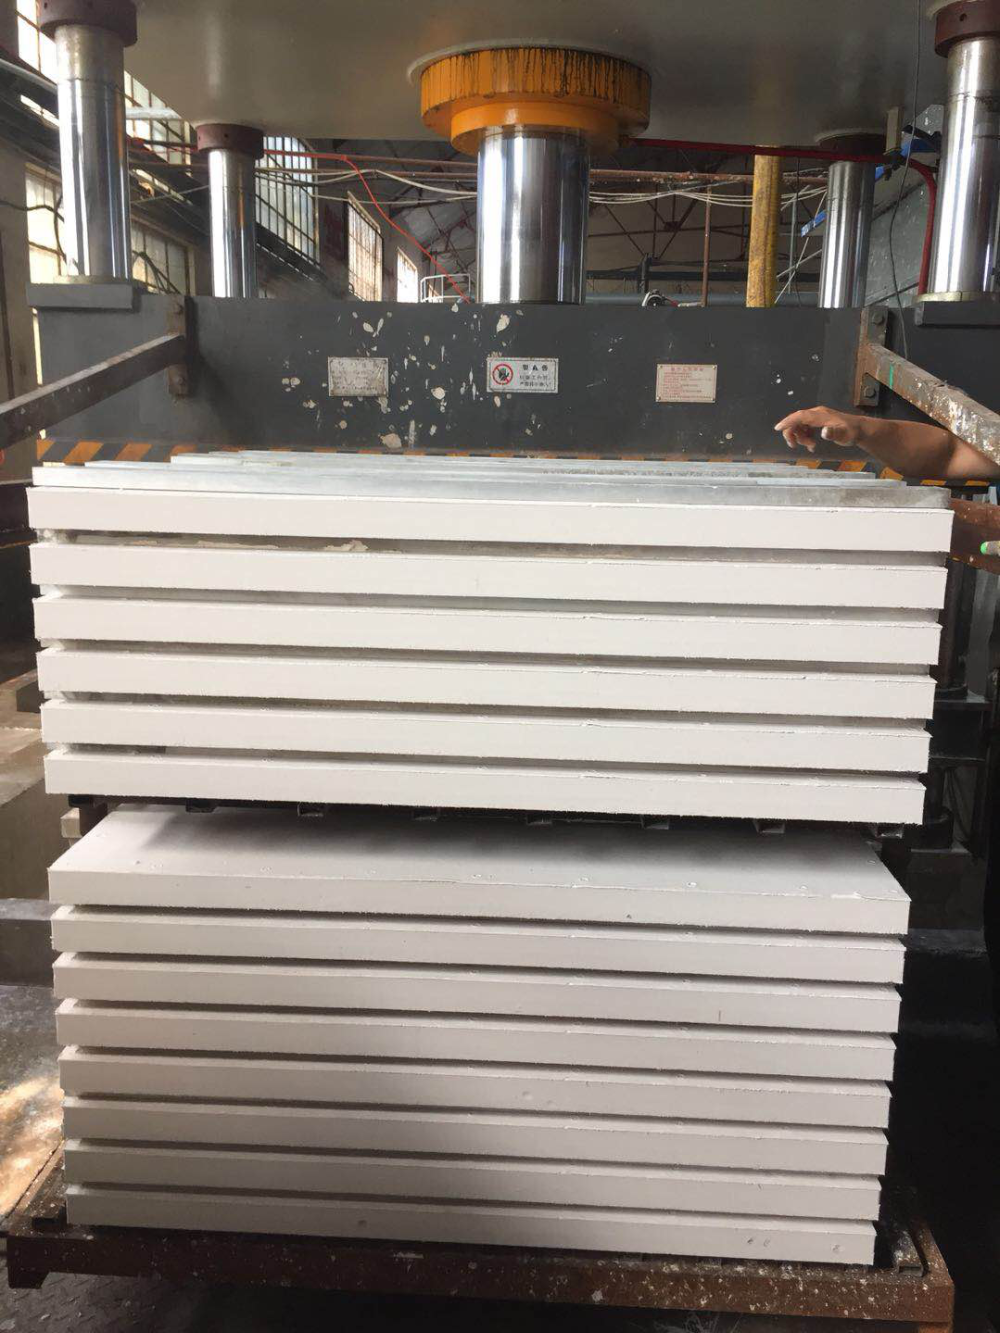 650C Thermal Insulation Calcium Silicate Board for Industrial Furnaces 600x300x50mm 220kg/m3